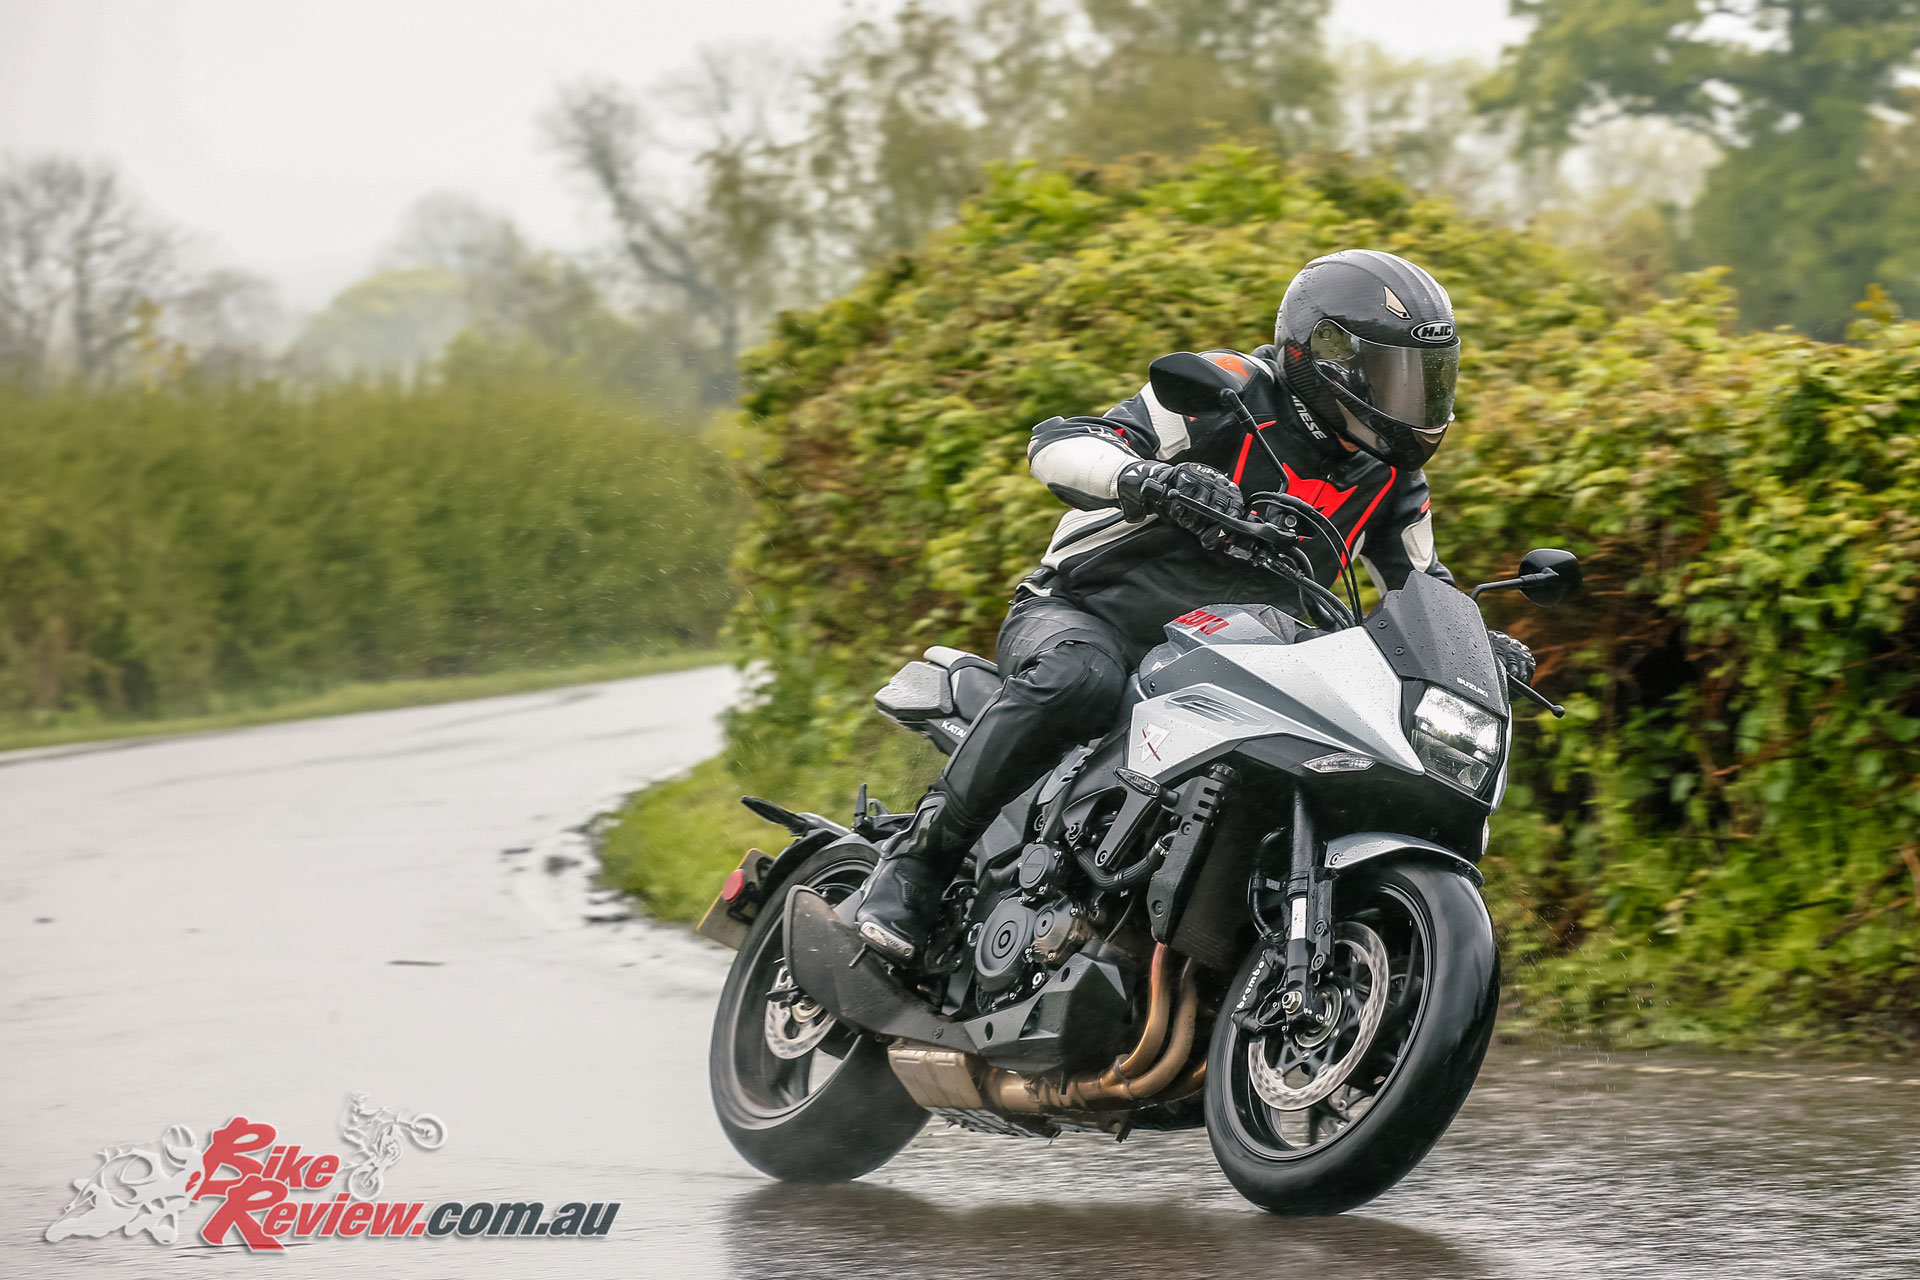 Testing conditions proved interesting, giving a good opportunity to test the new Katana's wet weather abilities